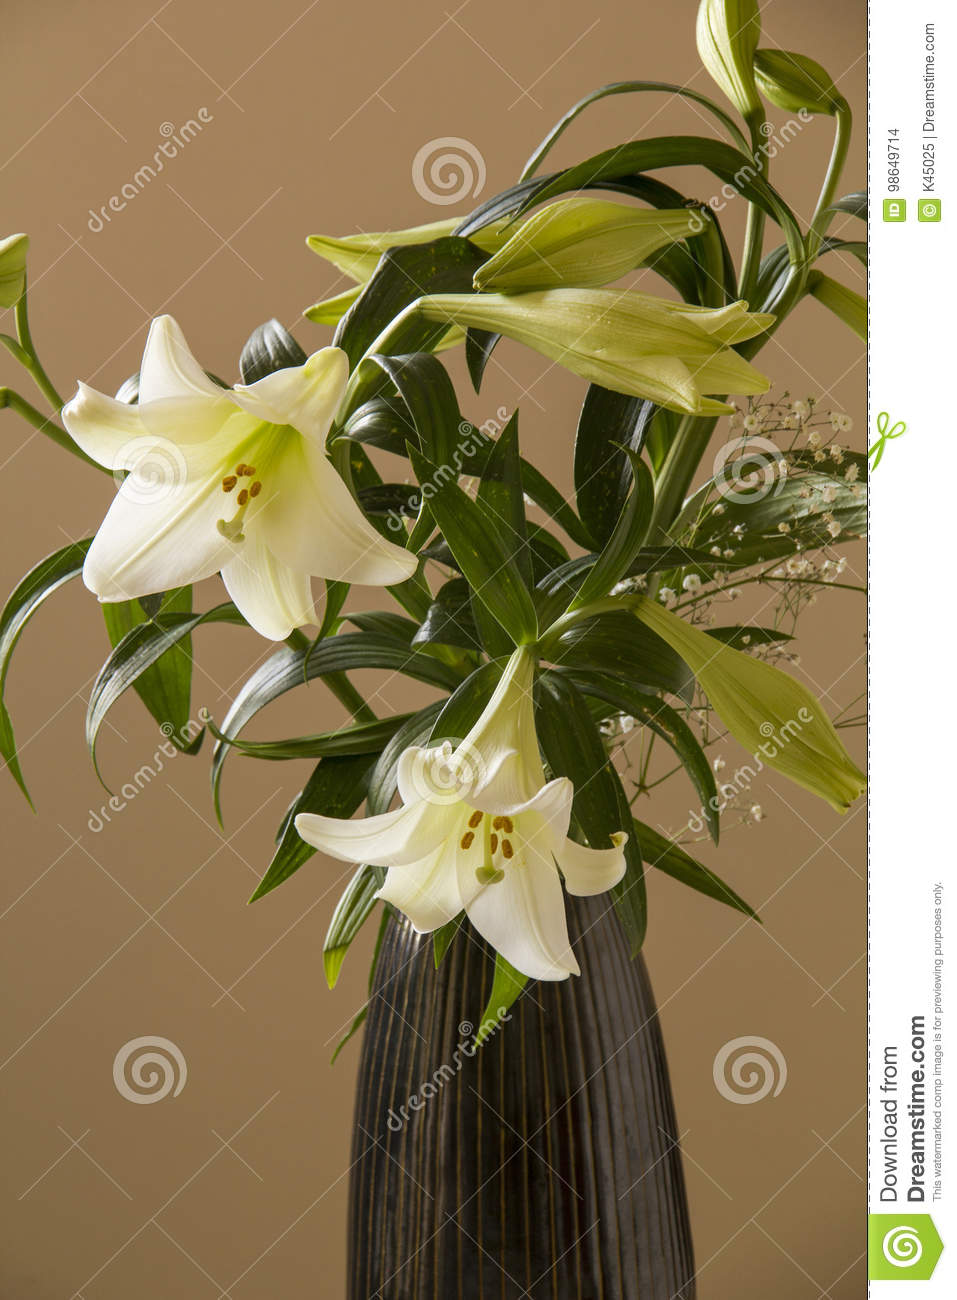 White Flower Lily In The Black Vase On A Beige Background Stock